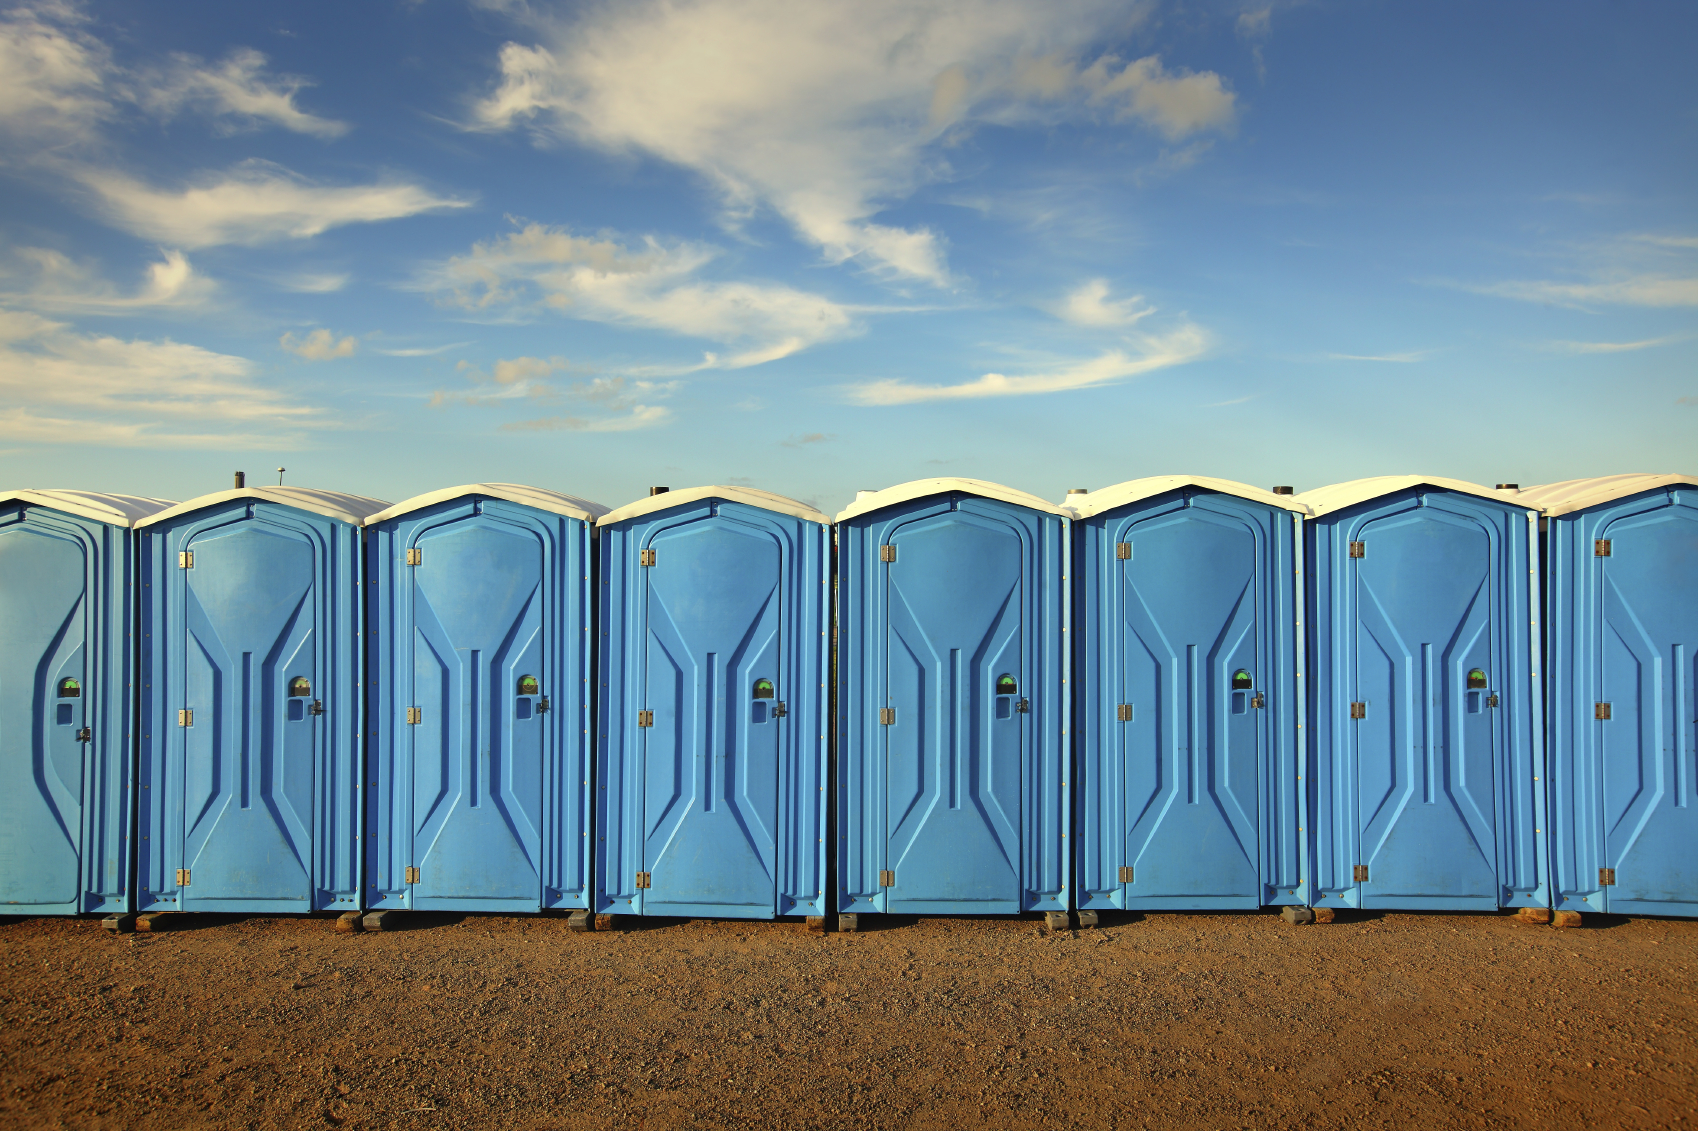 Portable Toilet Exhibition : 3d printed portable toilets using innovative 3d printing technology